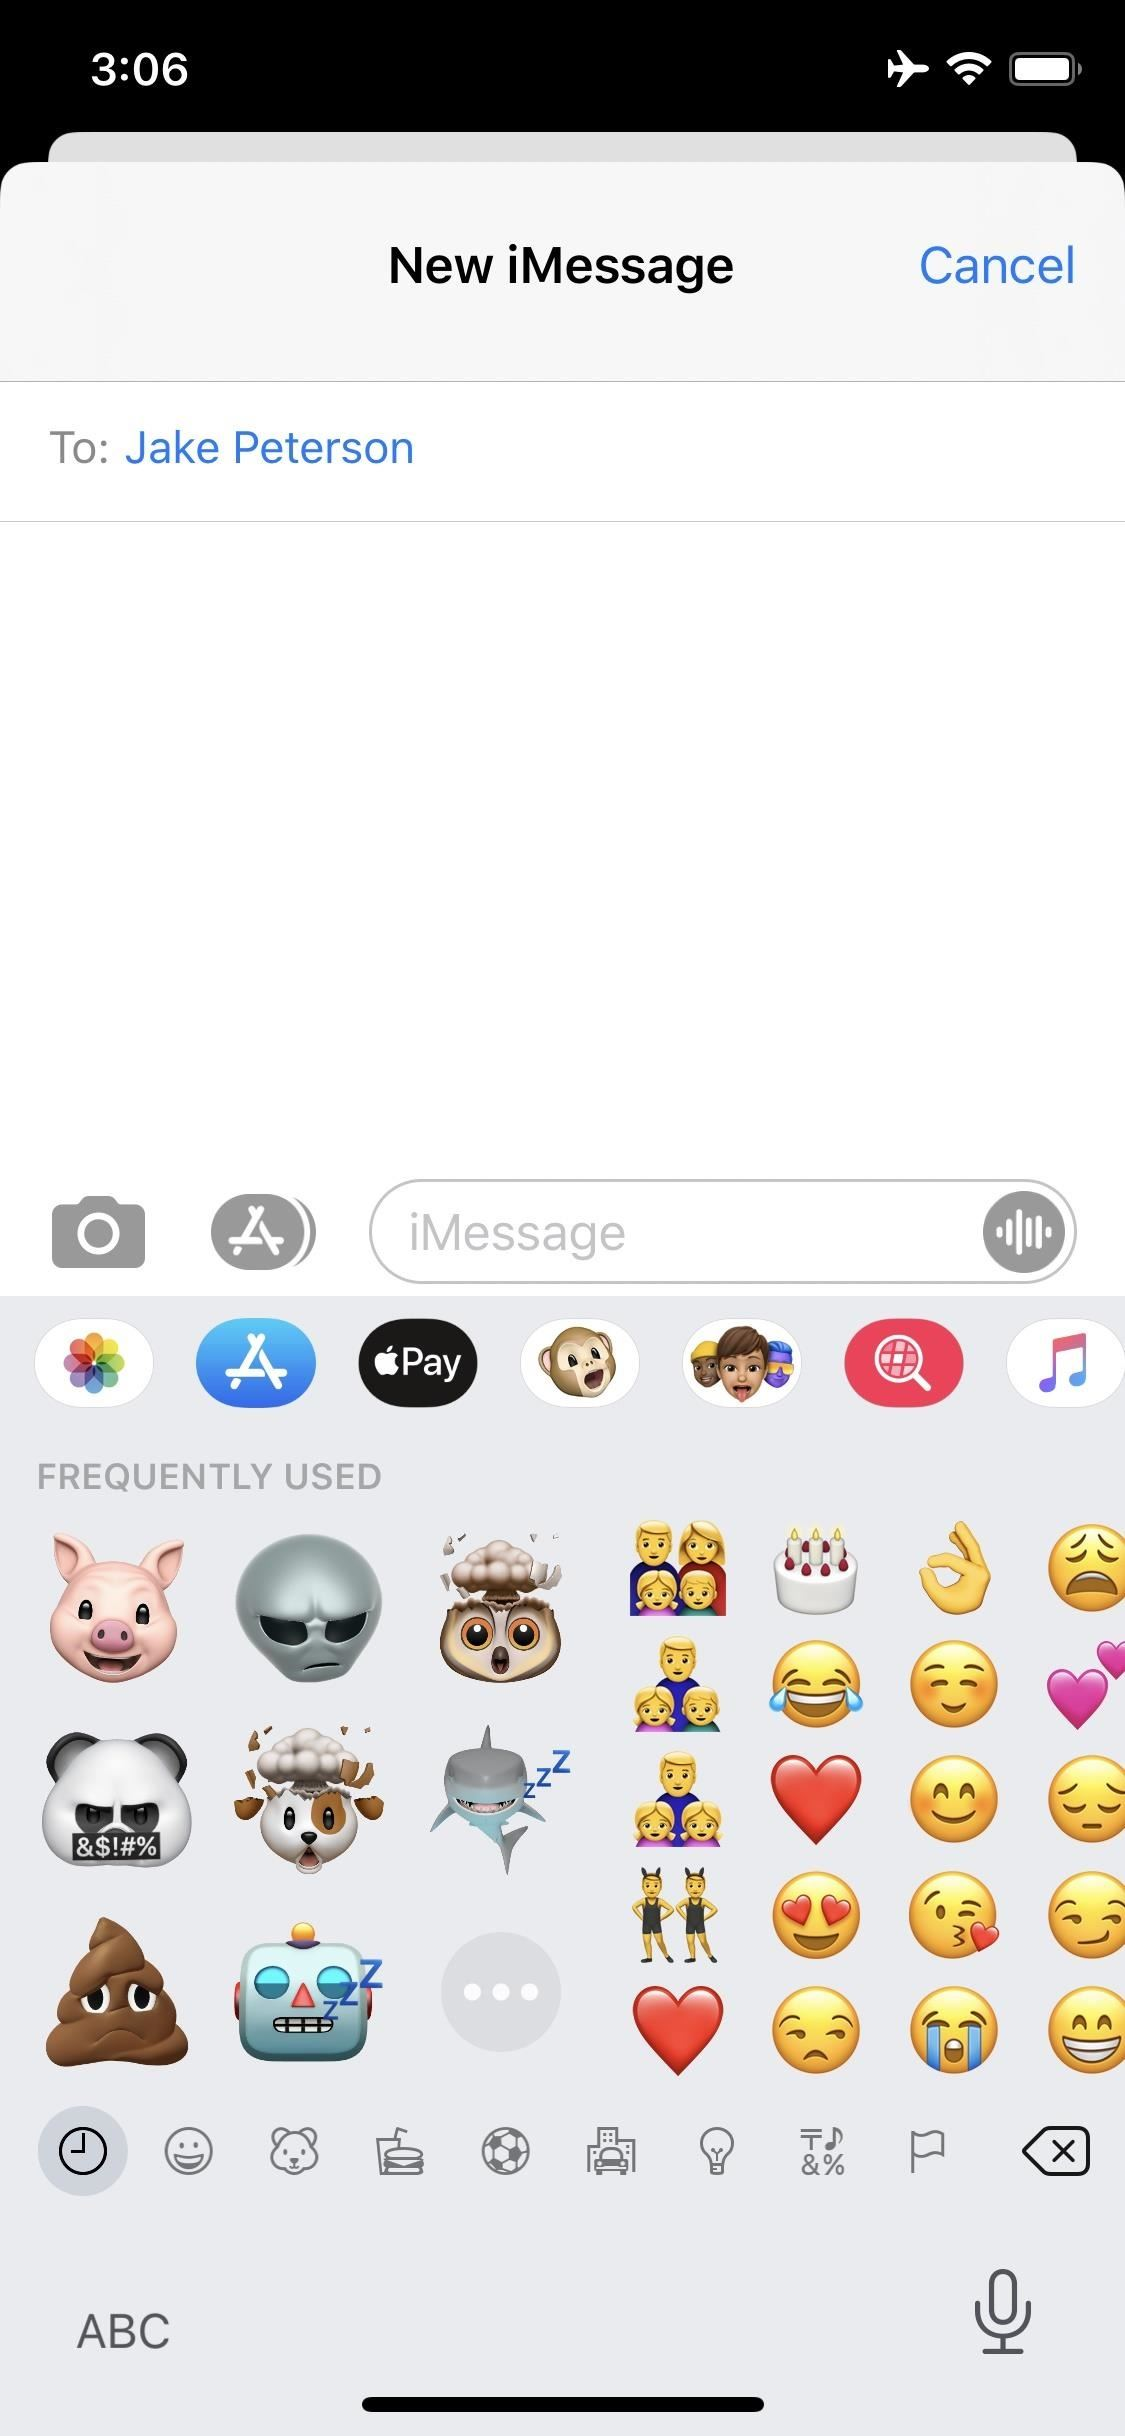 Finally there is a way to disable these annoying Memoji stickers in messages on the iPhone